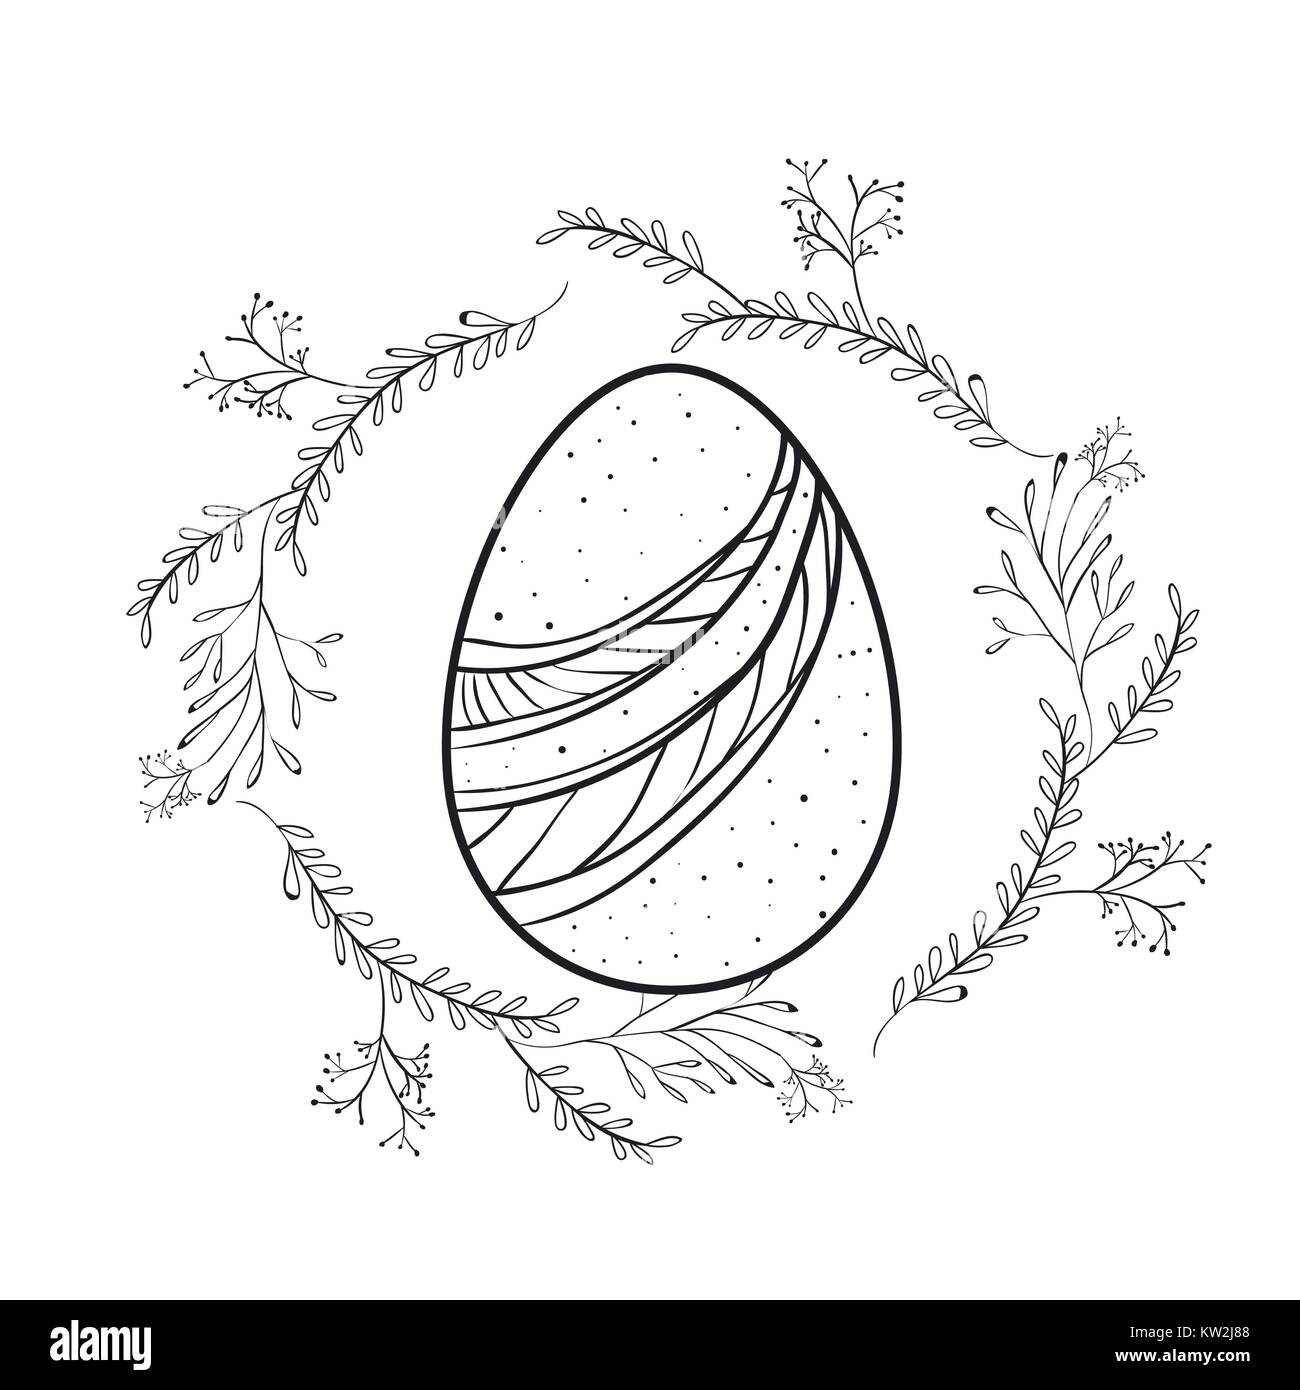 easter egg with decorative lines and branches around in monochrome